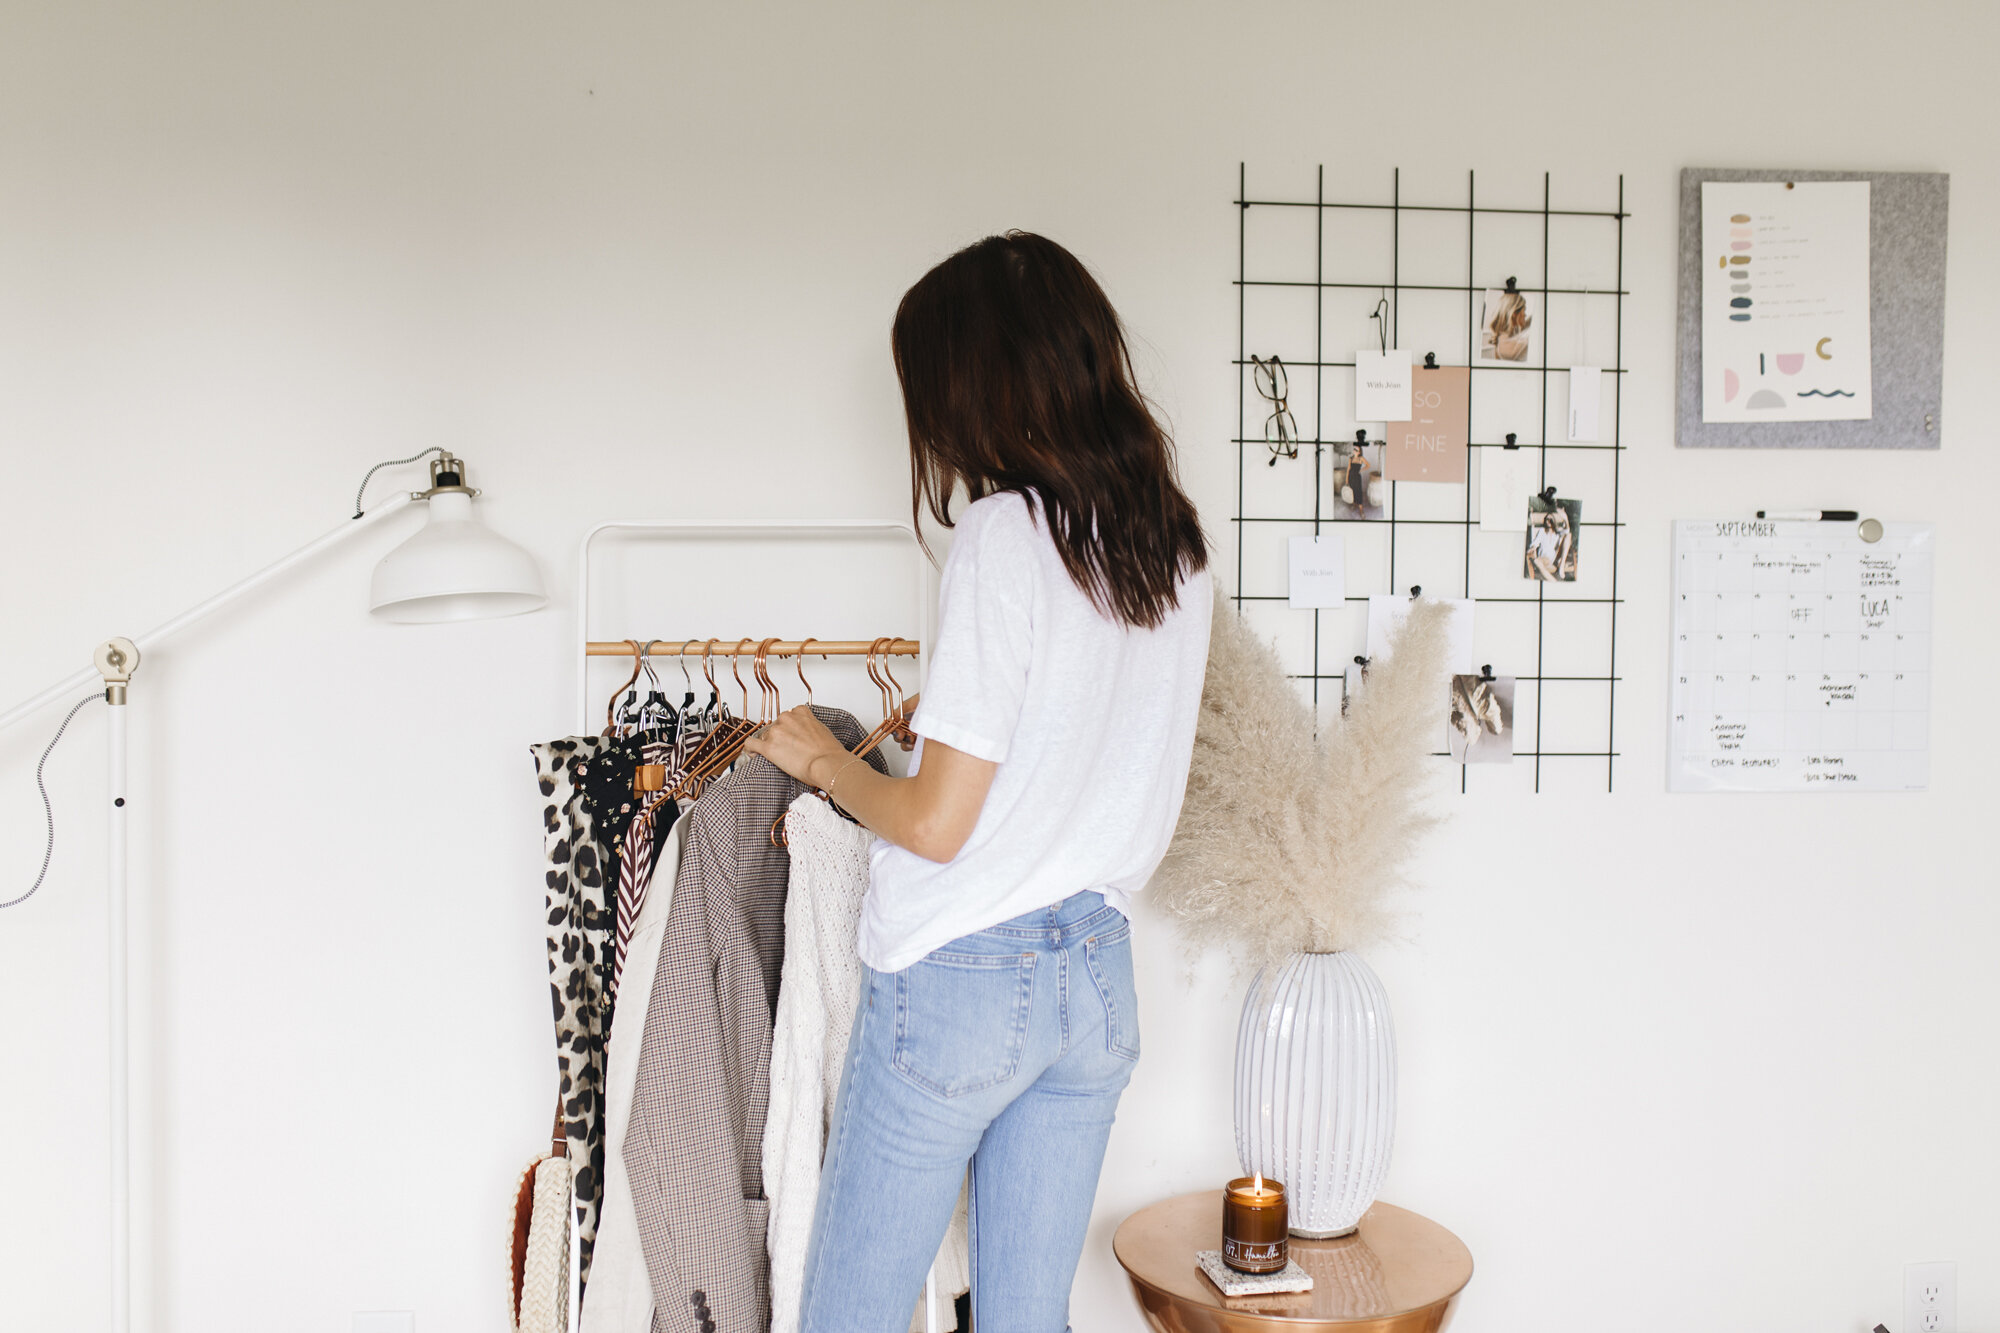 Fall is here and I am so excited to transition my wardrobe using my summer clothing and warmer outerwear. Read on for fall styling tips from creative lifestyle and fashion travel blogger emily r hess, the founder of luca creative co